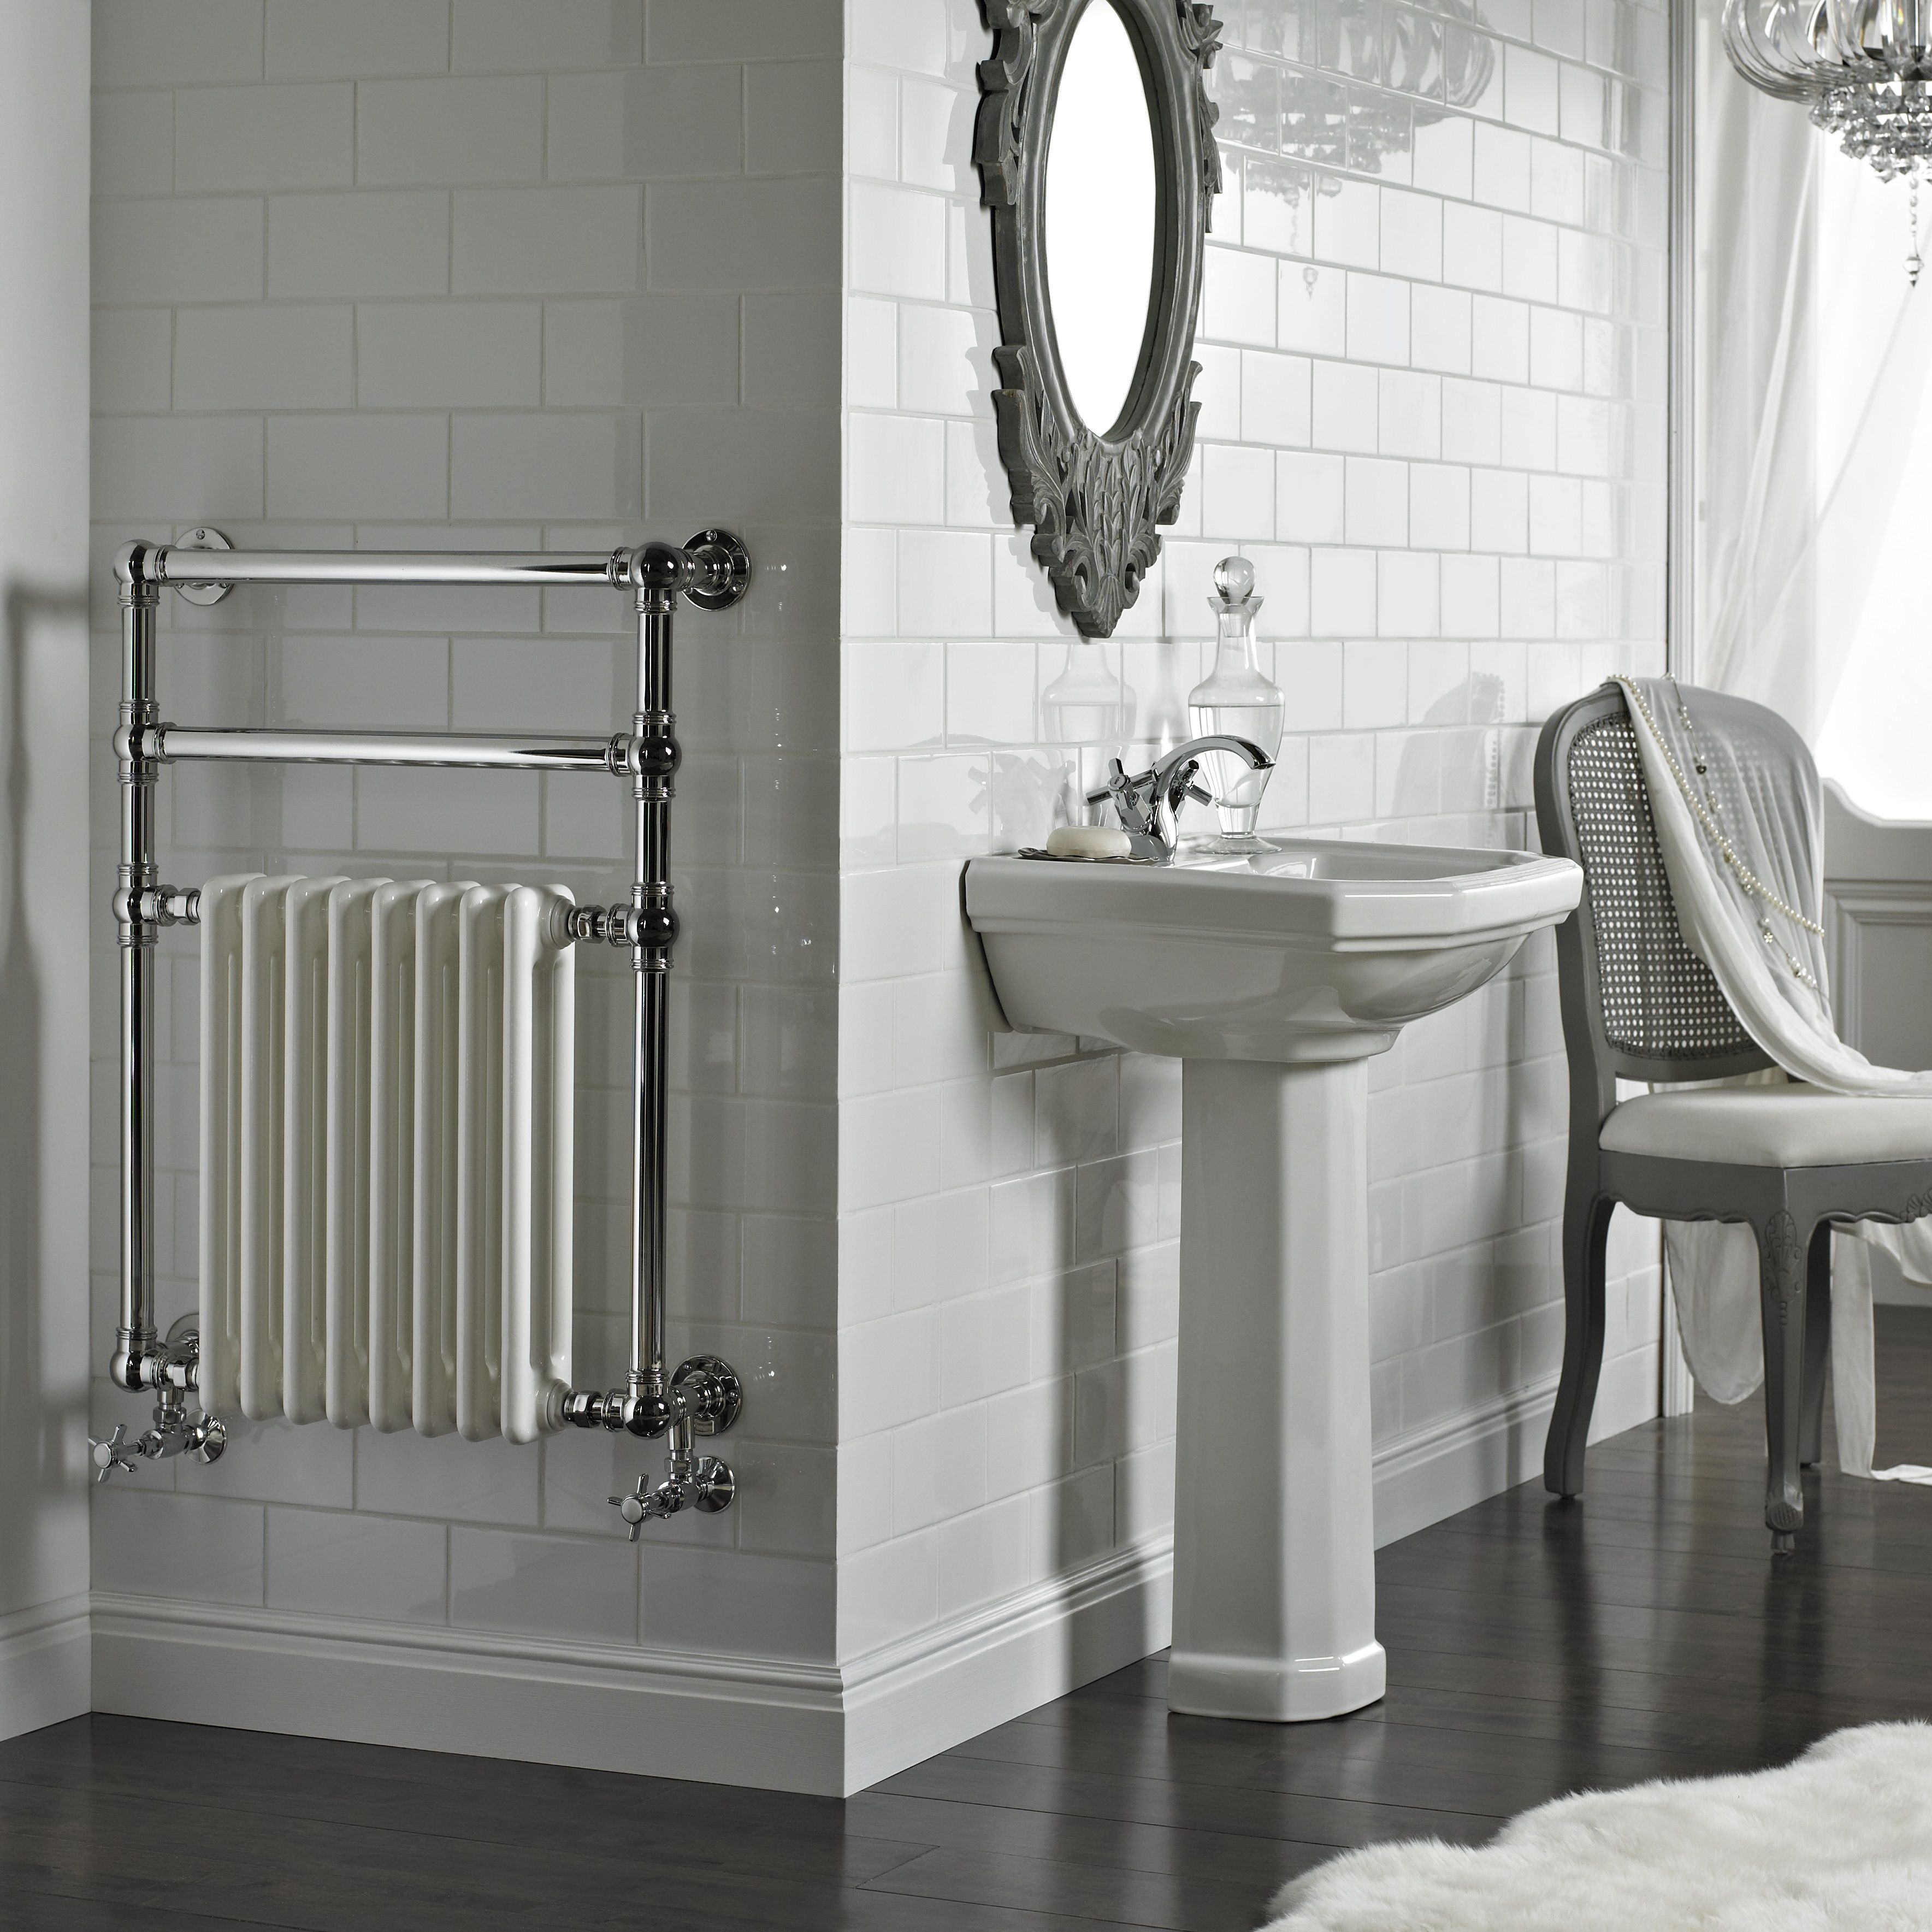 Vogue Regency Wall Mounted heated towel rail